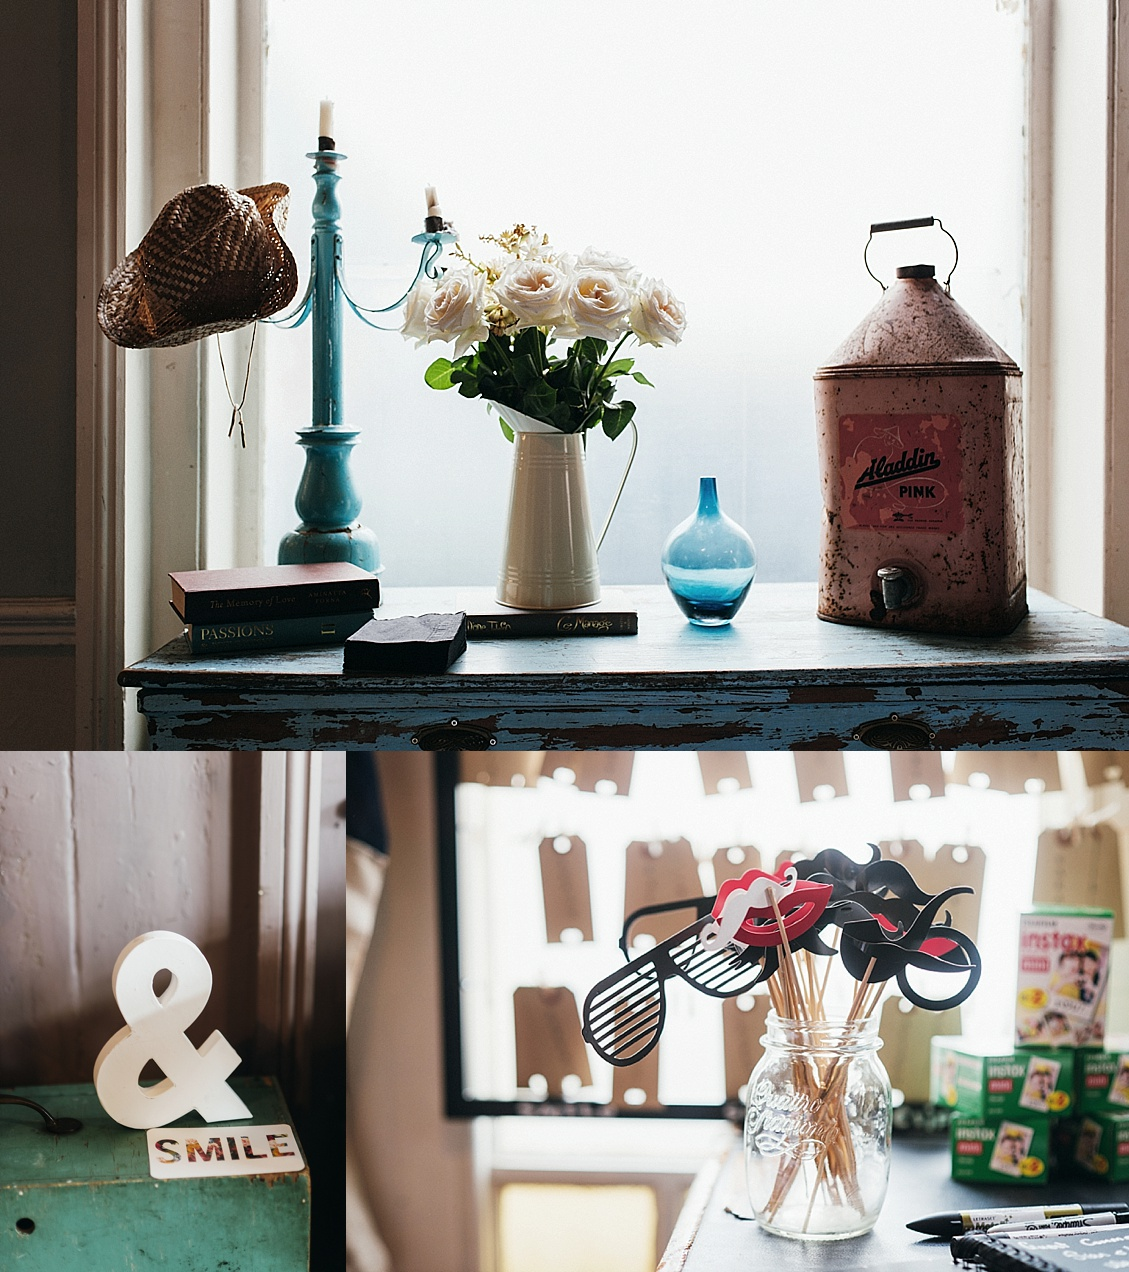 Photo Booth props and flowers at gay wedding The Roost Dalston wedding - quirky London wedding photographer © Babb Photo